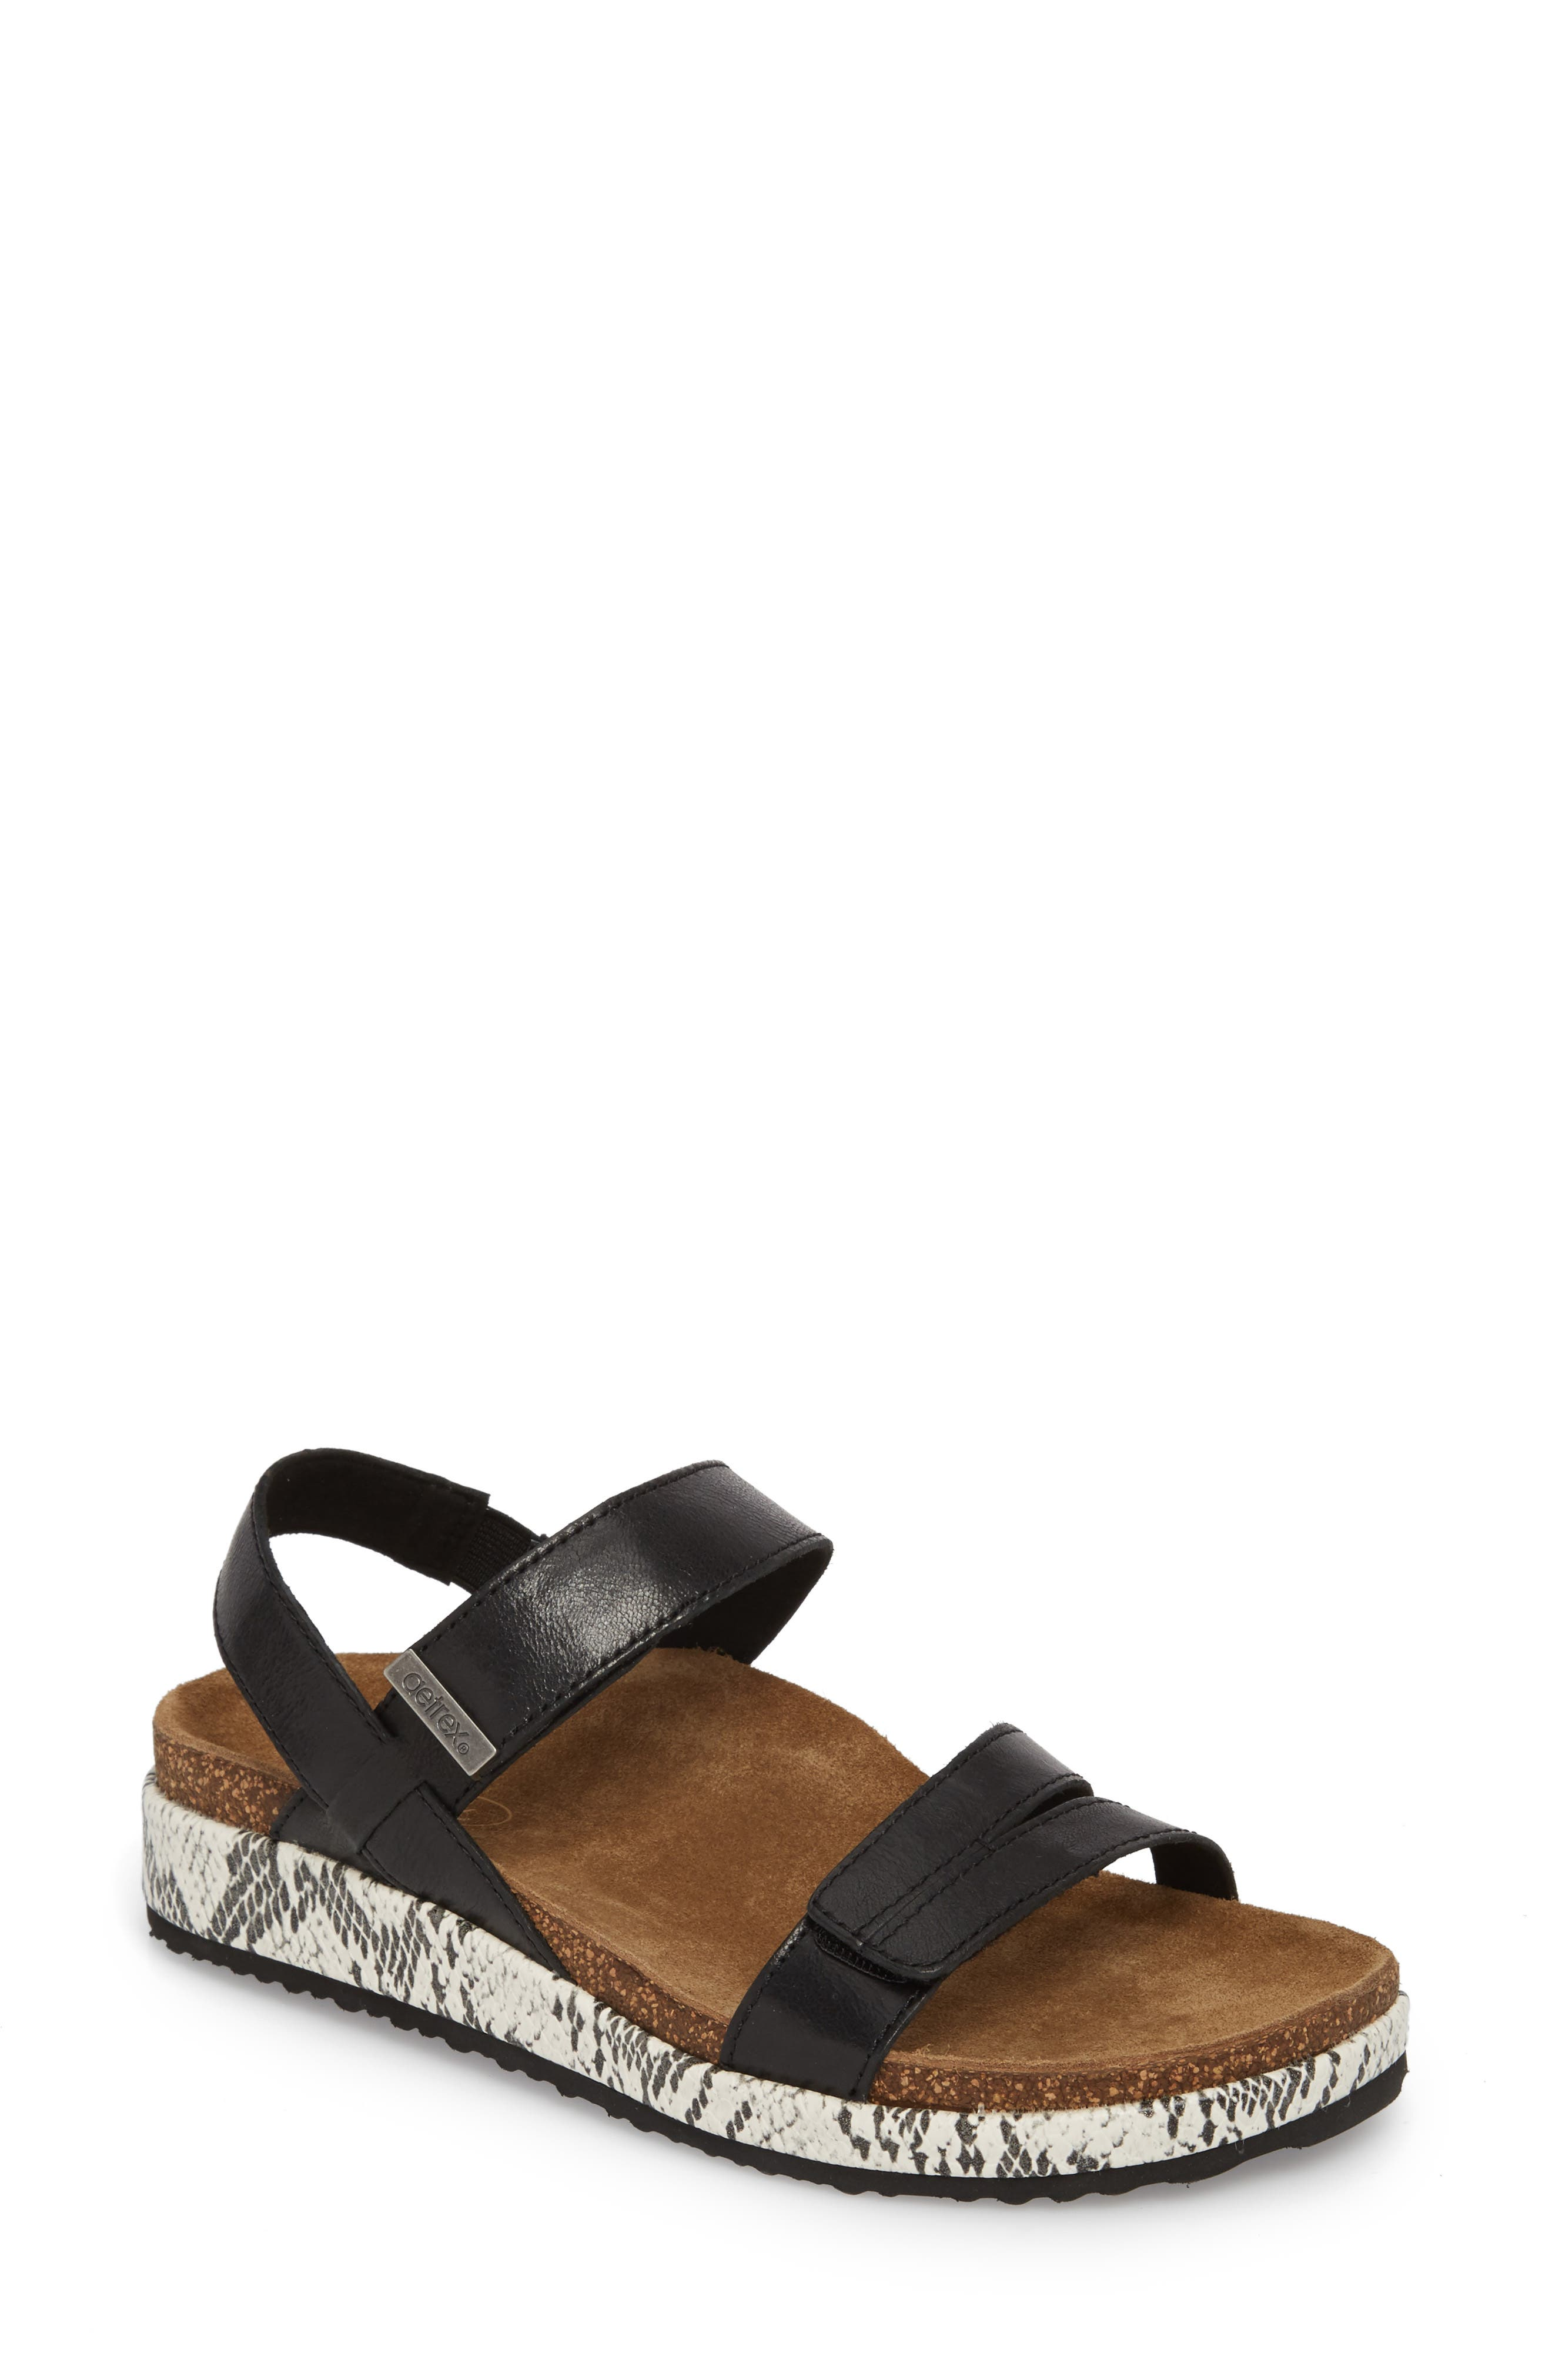 AETREX Bethany Sandal, Main, color, BLACK LEATHER